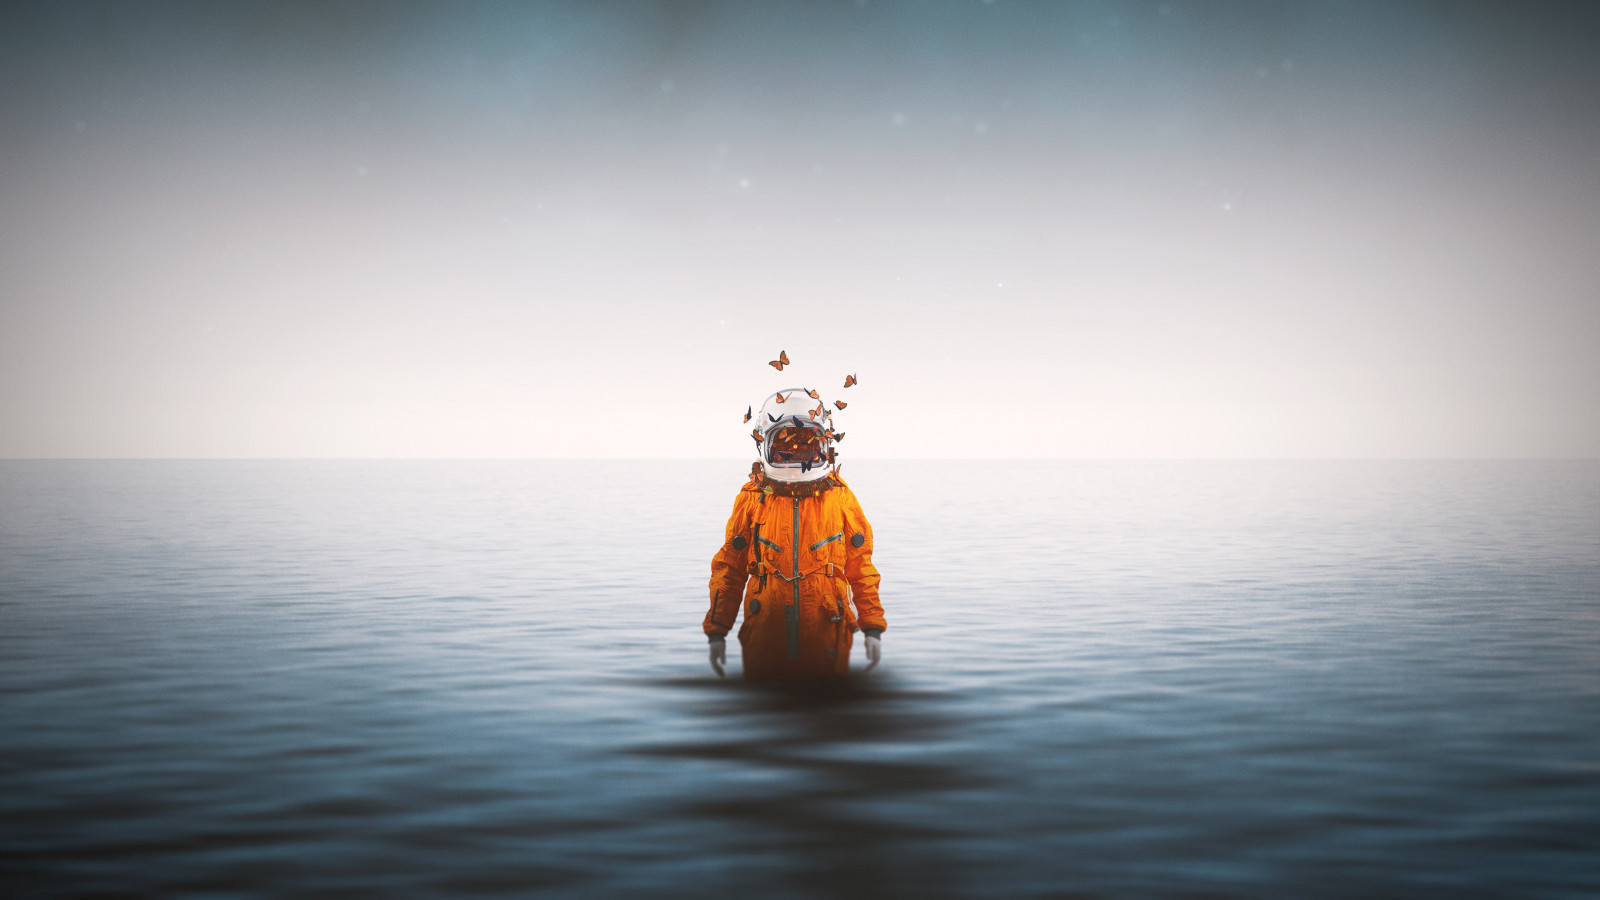 Lonely astronaut wallpaper 1600x900